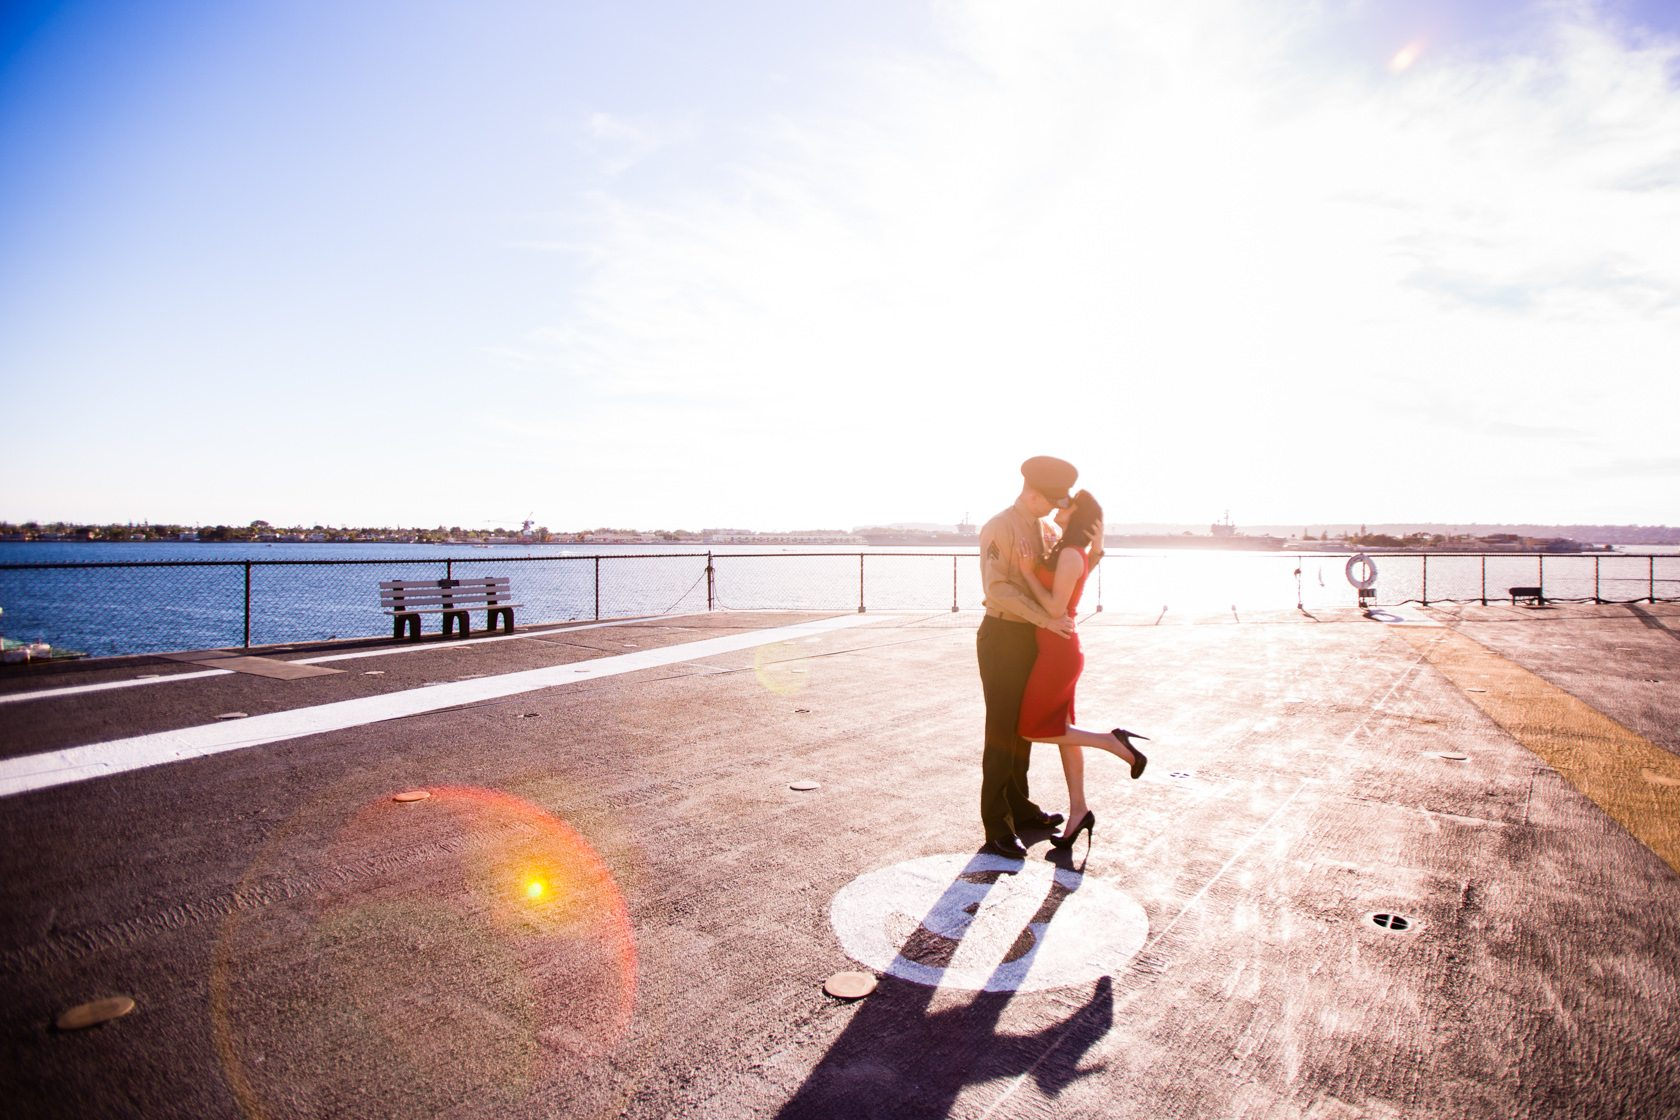 USS_Midway_Engagement_Session_06.jpg